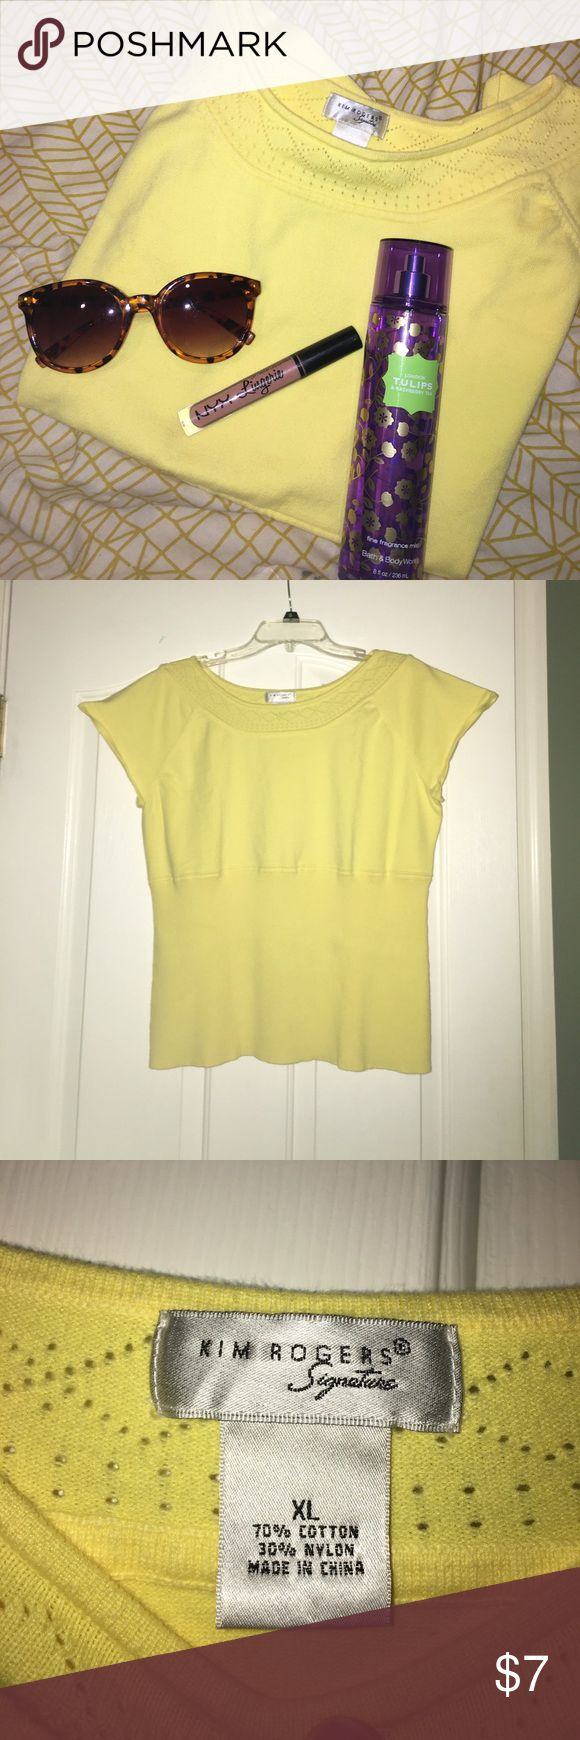 Kim Rogers Signature XL Yellow Short Sleeve Top This is a listing for a Kim Rogers Signature XL Yellow Short Sleeve Summer Top! This top has never been worn, so it's practically in perfect condition! This top comes from a non-smoking household. This top would be perfect for that upcoming family vacation! $7 Kim Rogers Tops Tees - Short Sleeve